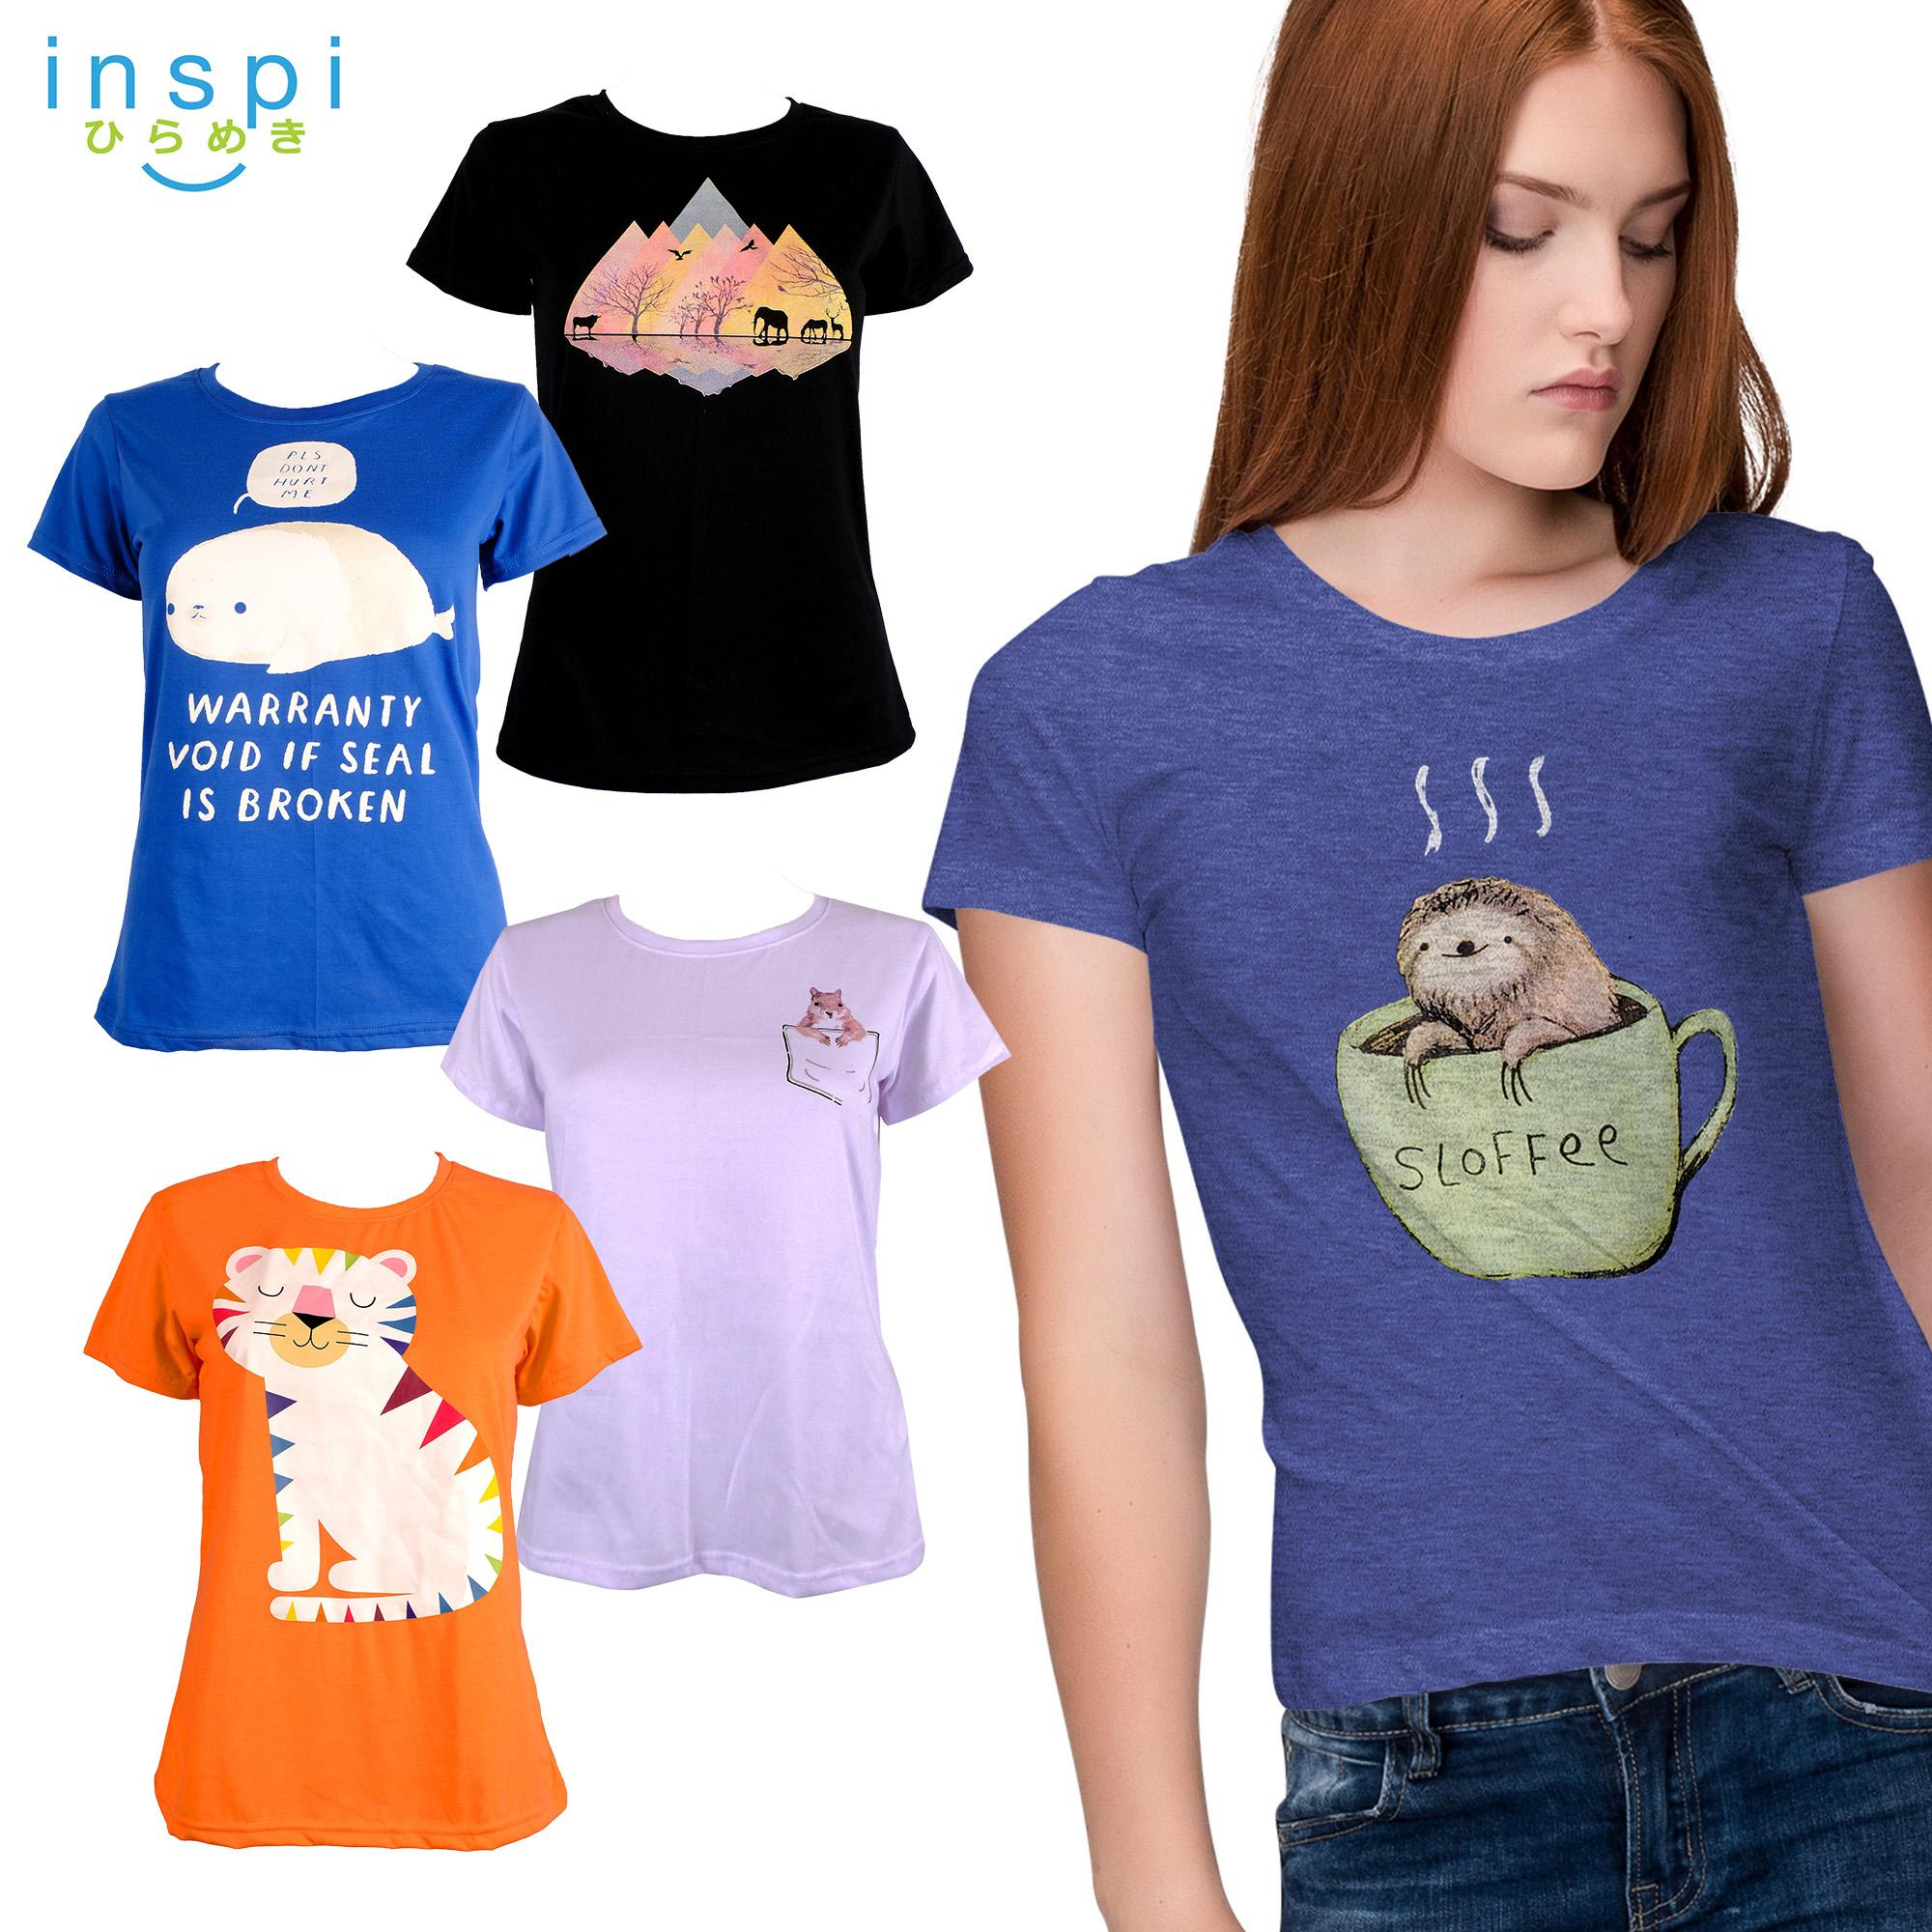 1bd81e646db INSPI Tees Ladies Pet Collection tshirt printed graphic tee Ladies t shirt  shirts women tshirts for